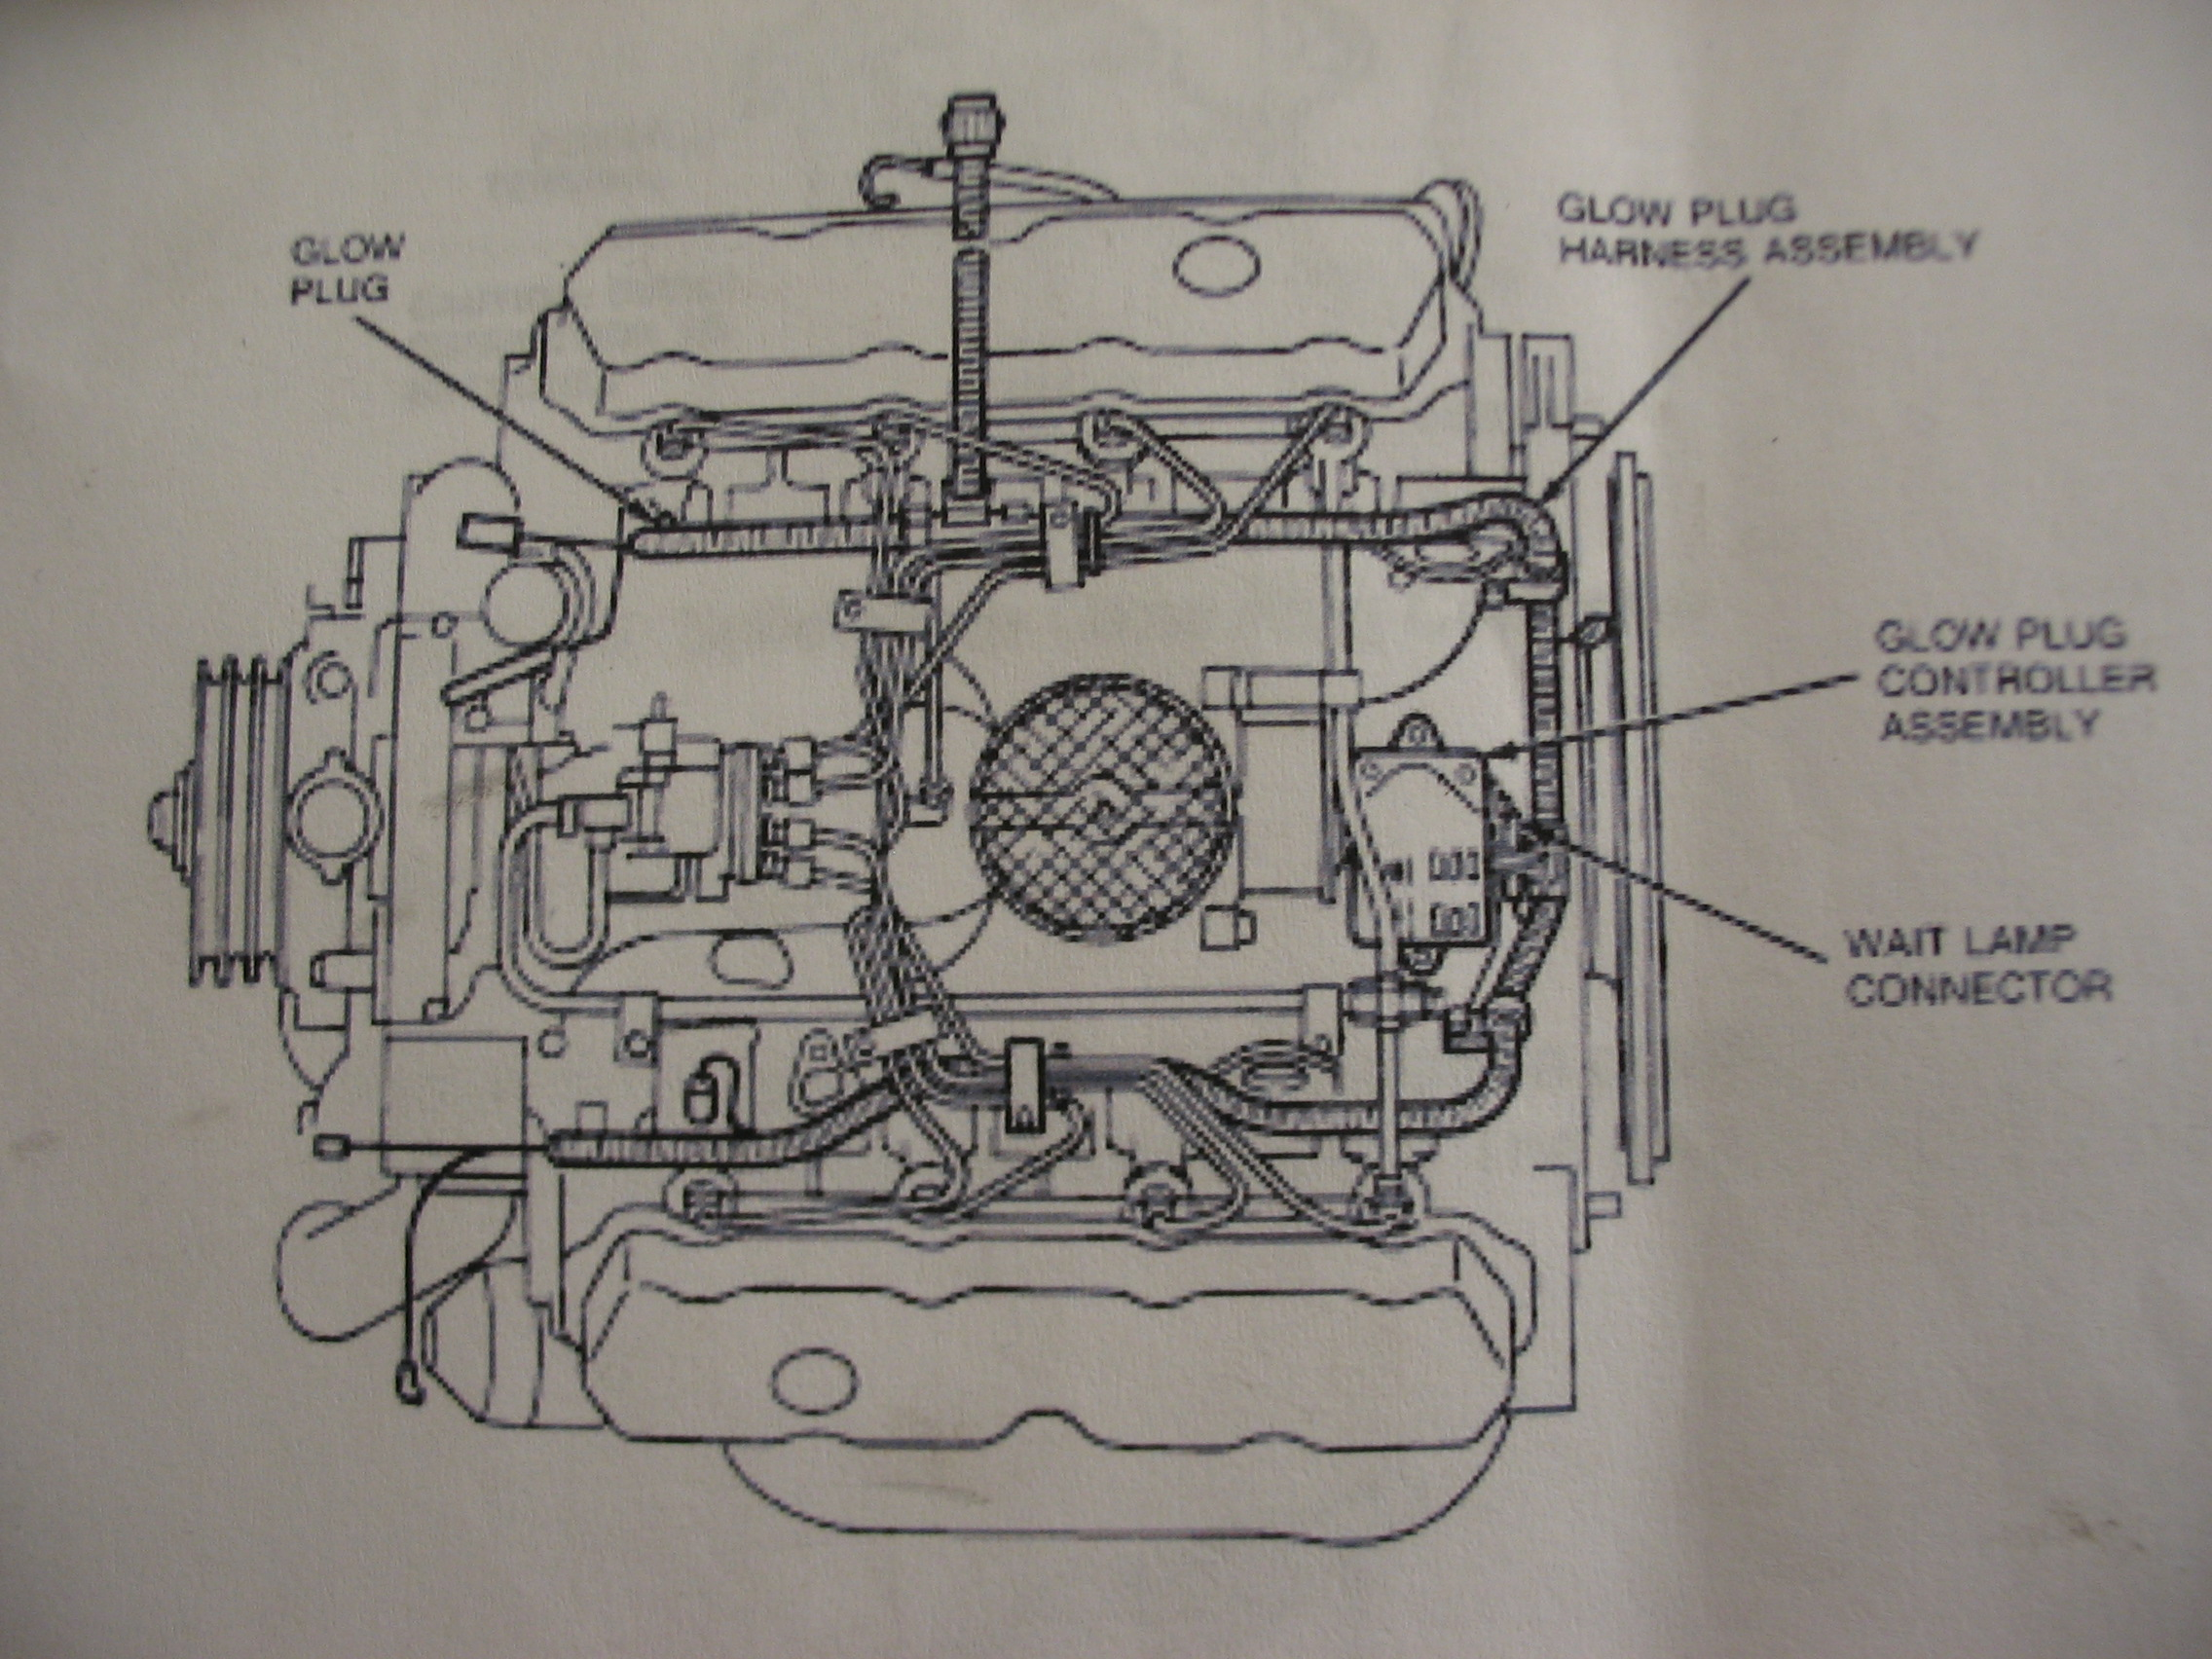 Ford Diagrams Glow Plug Wiring 91 Location On Engine